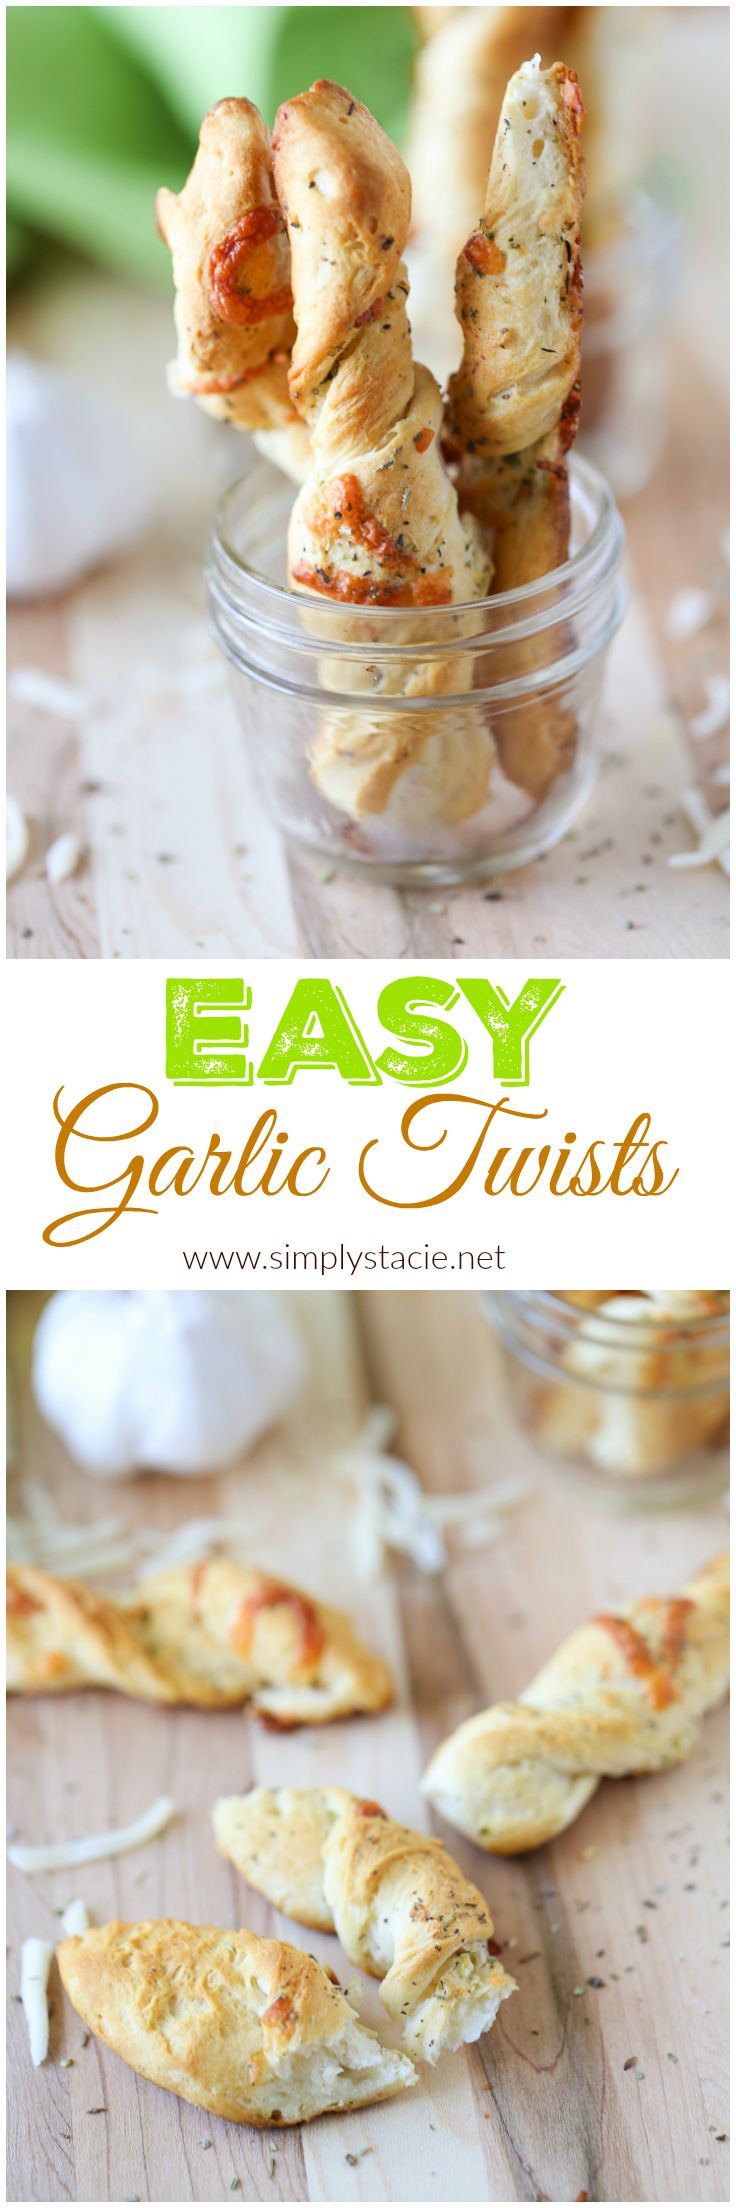 This Easy Garlic Twists recipe is a crowd favourite with only a few ingredients! Use refrigerated biscuits to save time.